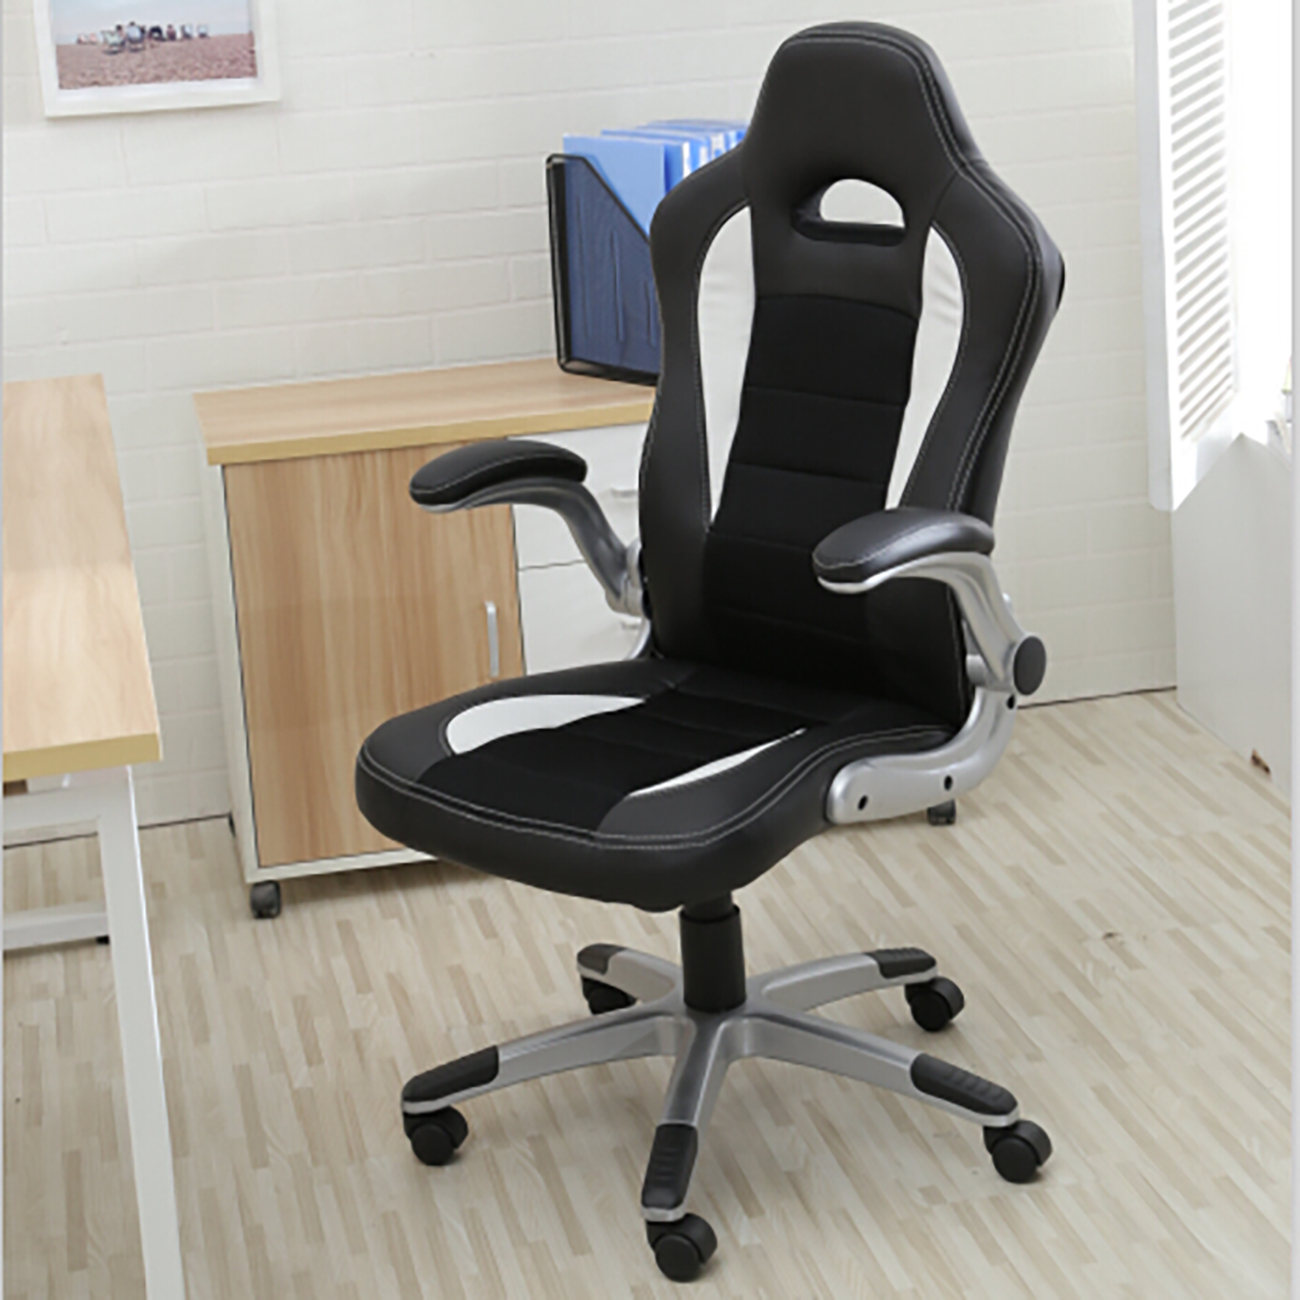 office chair armrest best chairs inc ferdinand indiana ergonomic computer pu leather desk race car